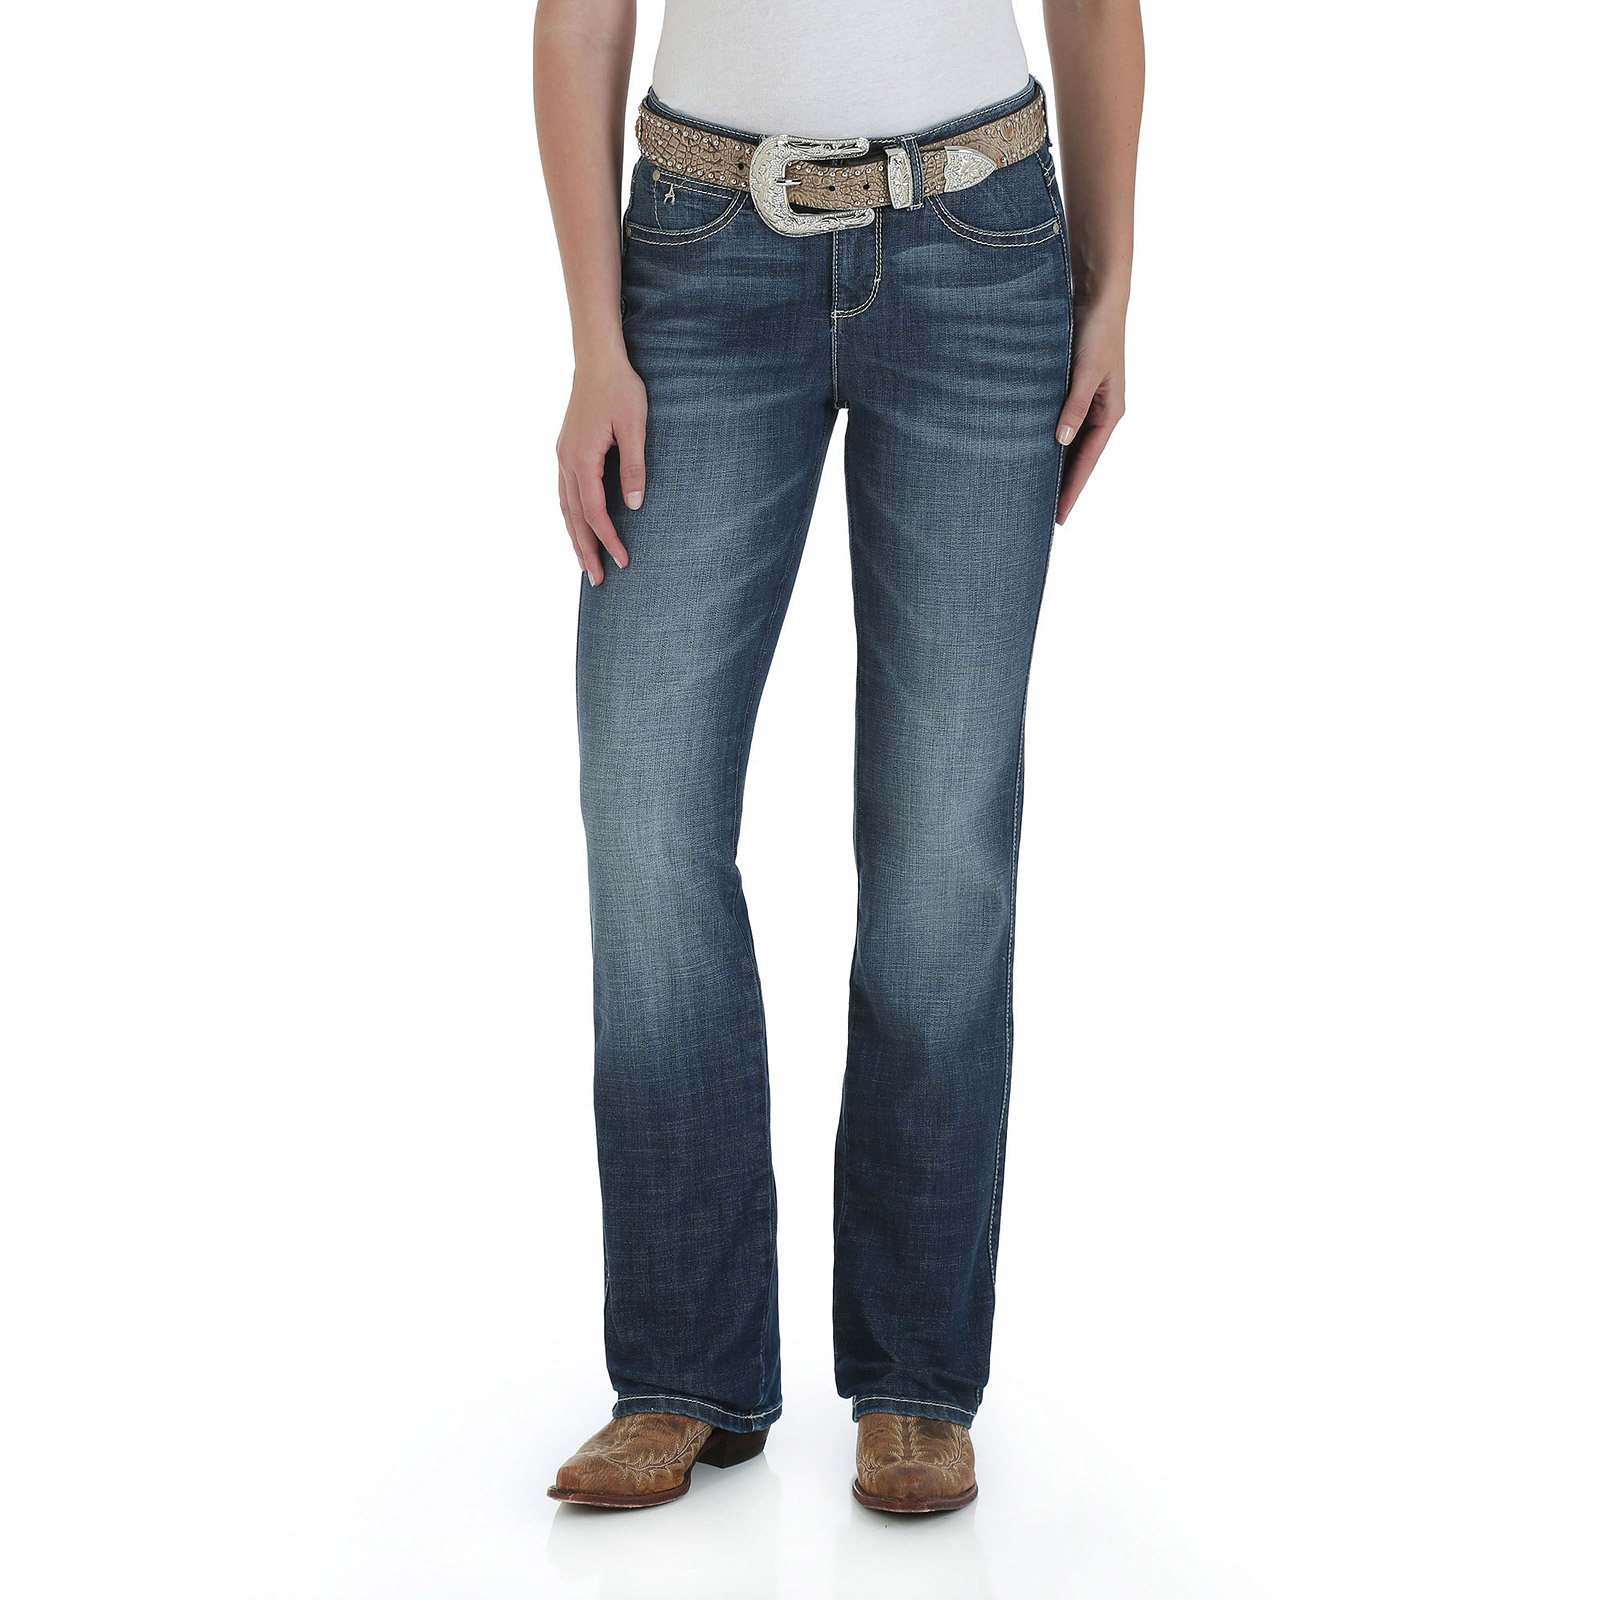 Product Description for Aura Jeans Wrangler